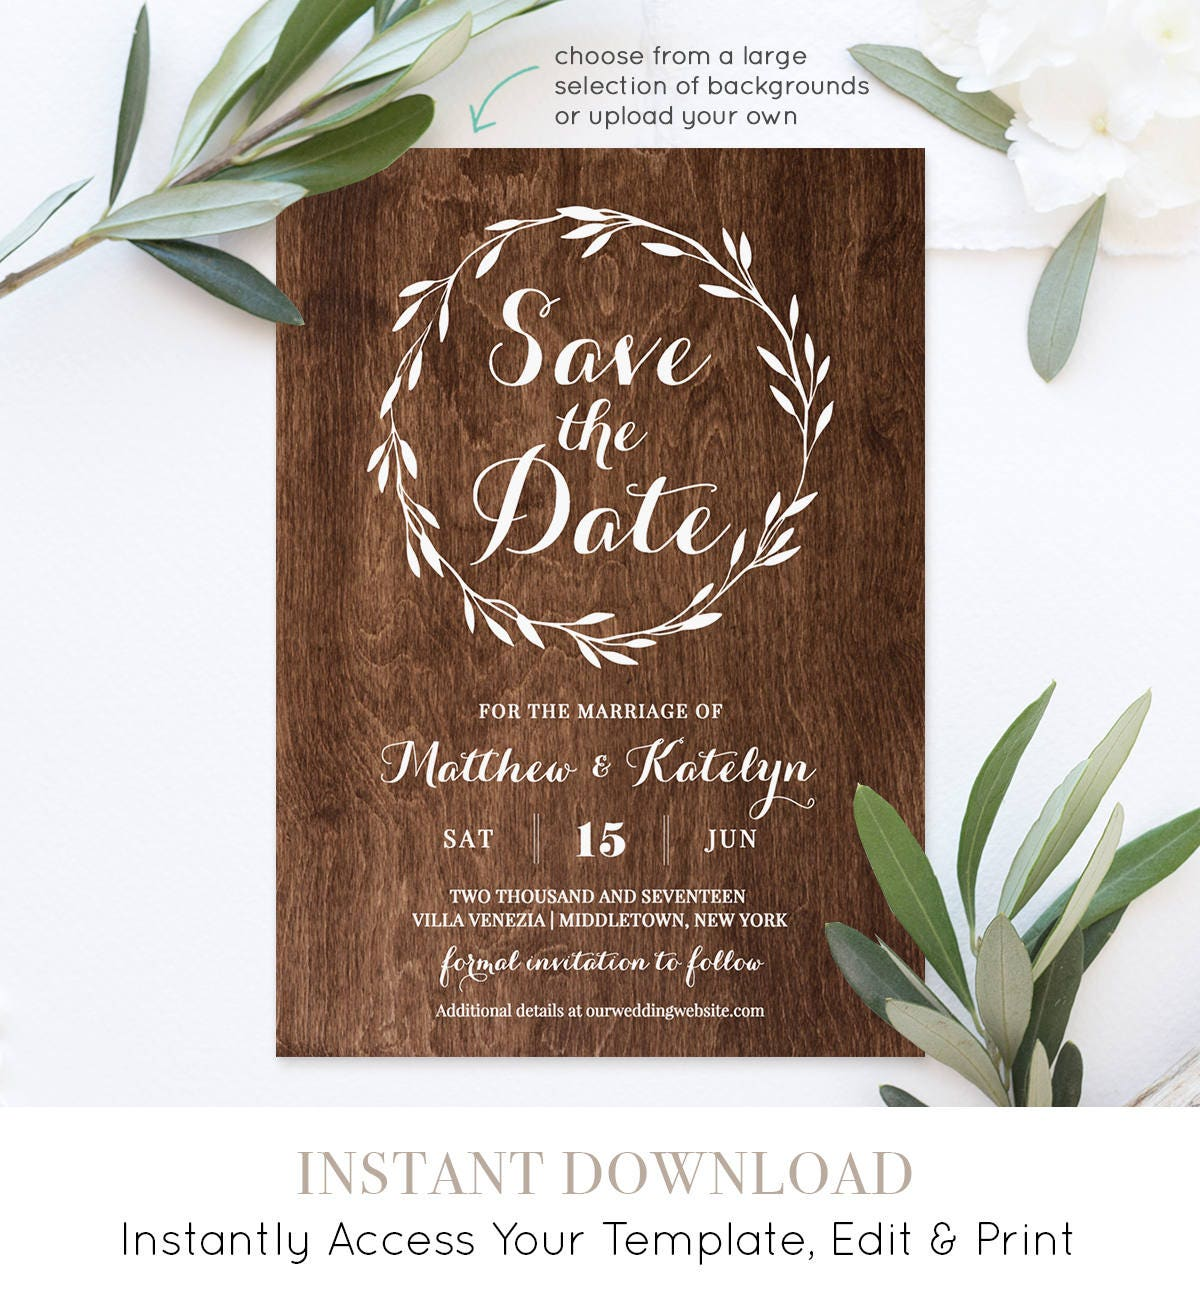 Rustic save the date template instant download diy kraft printable wedding save the date for Rustic save the date templates free